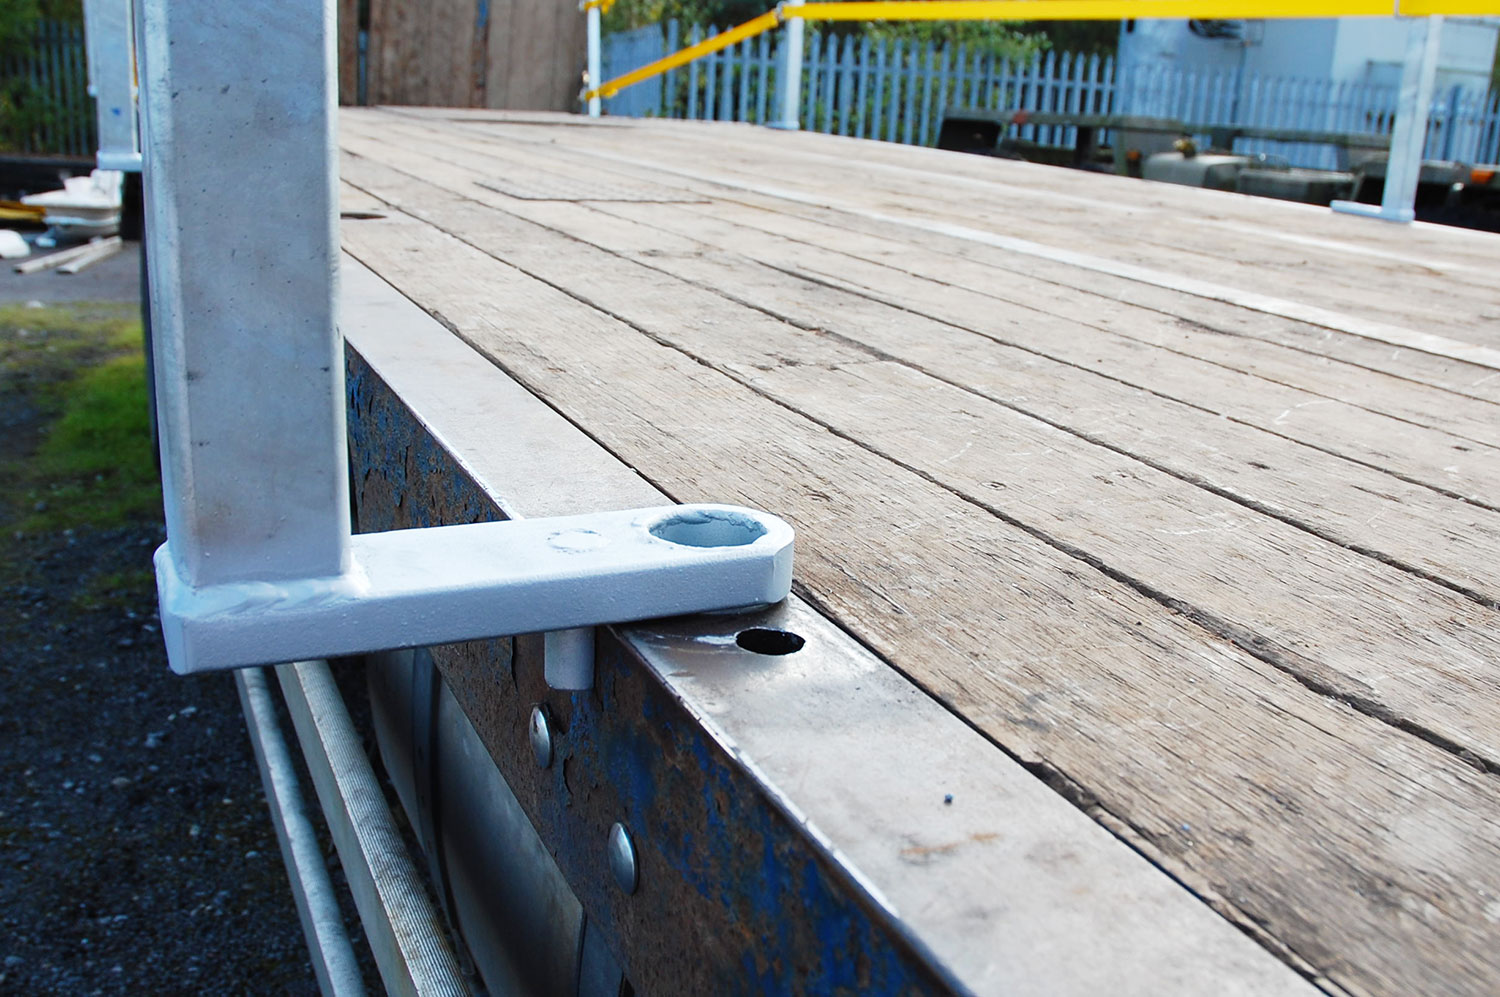 Swing out edge protection retrofit for NMC